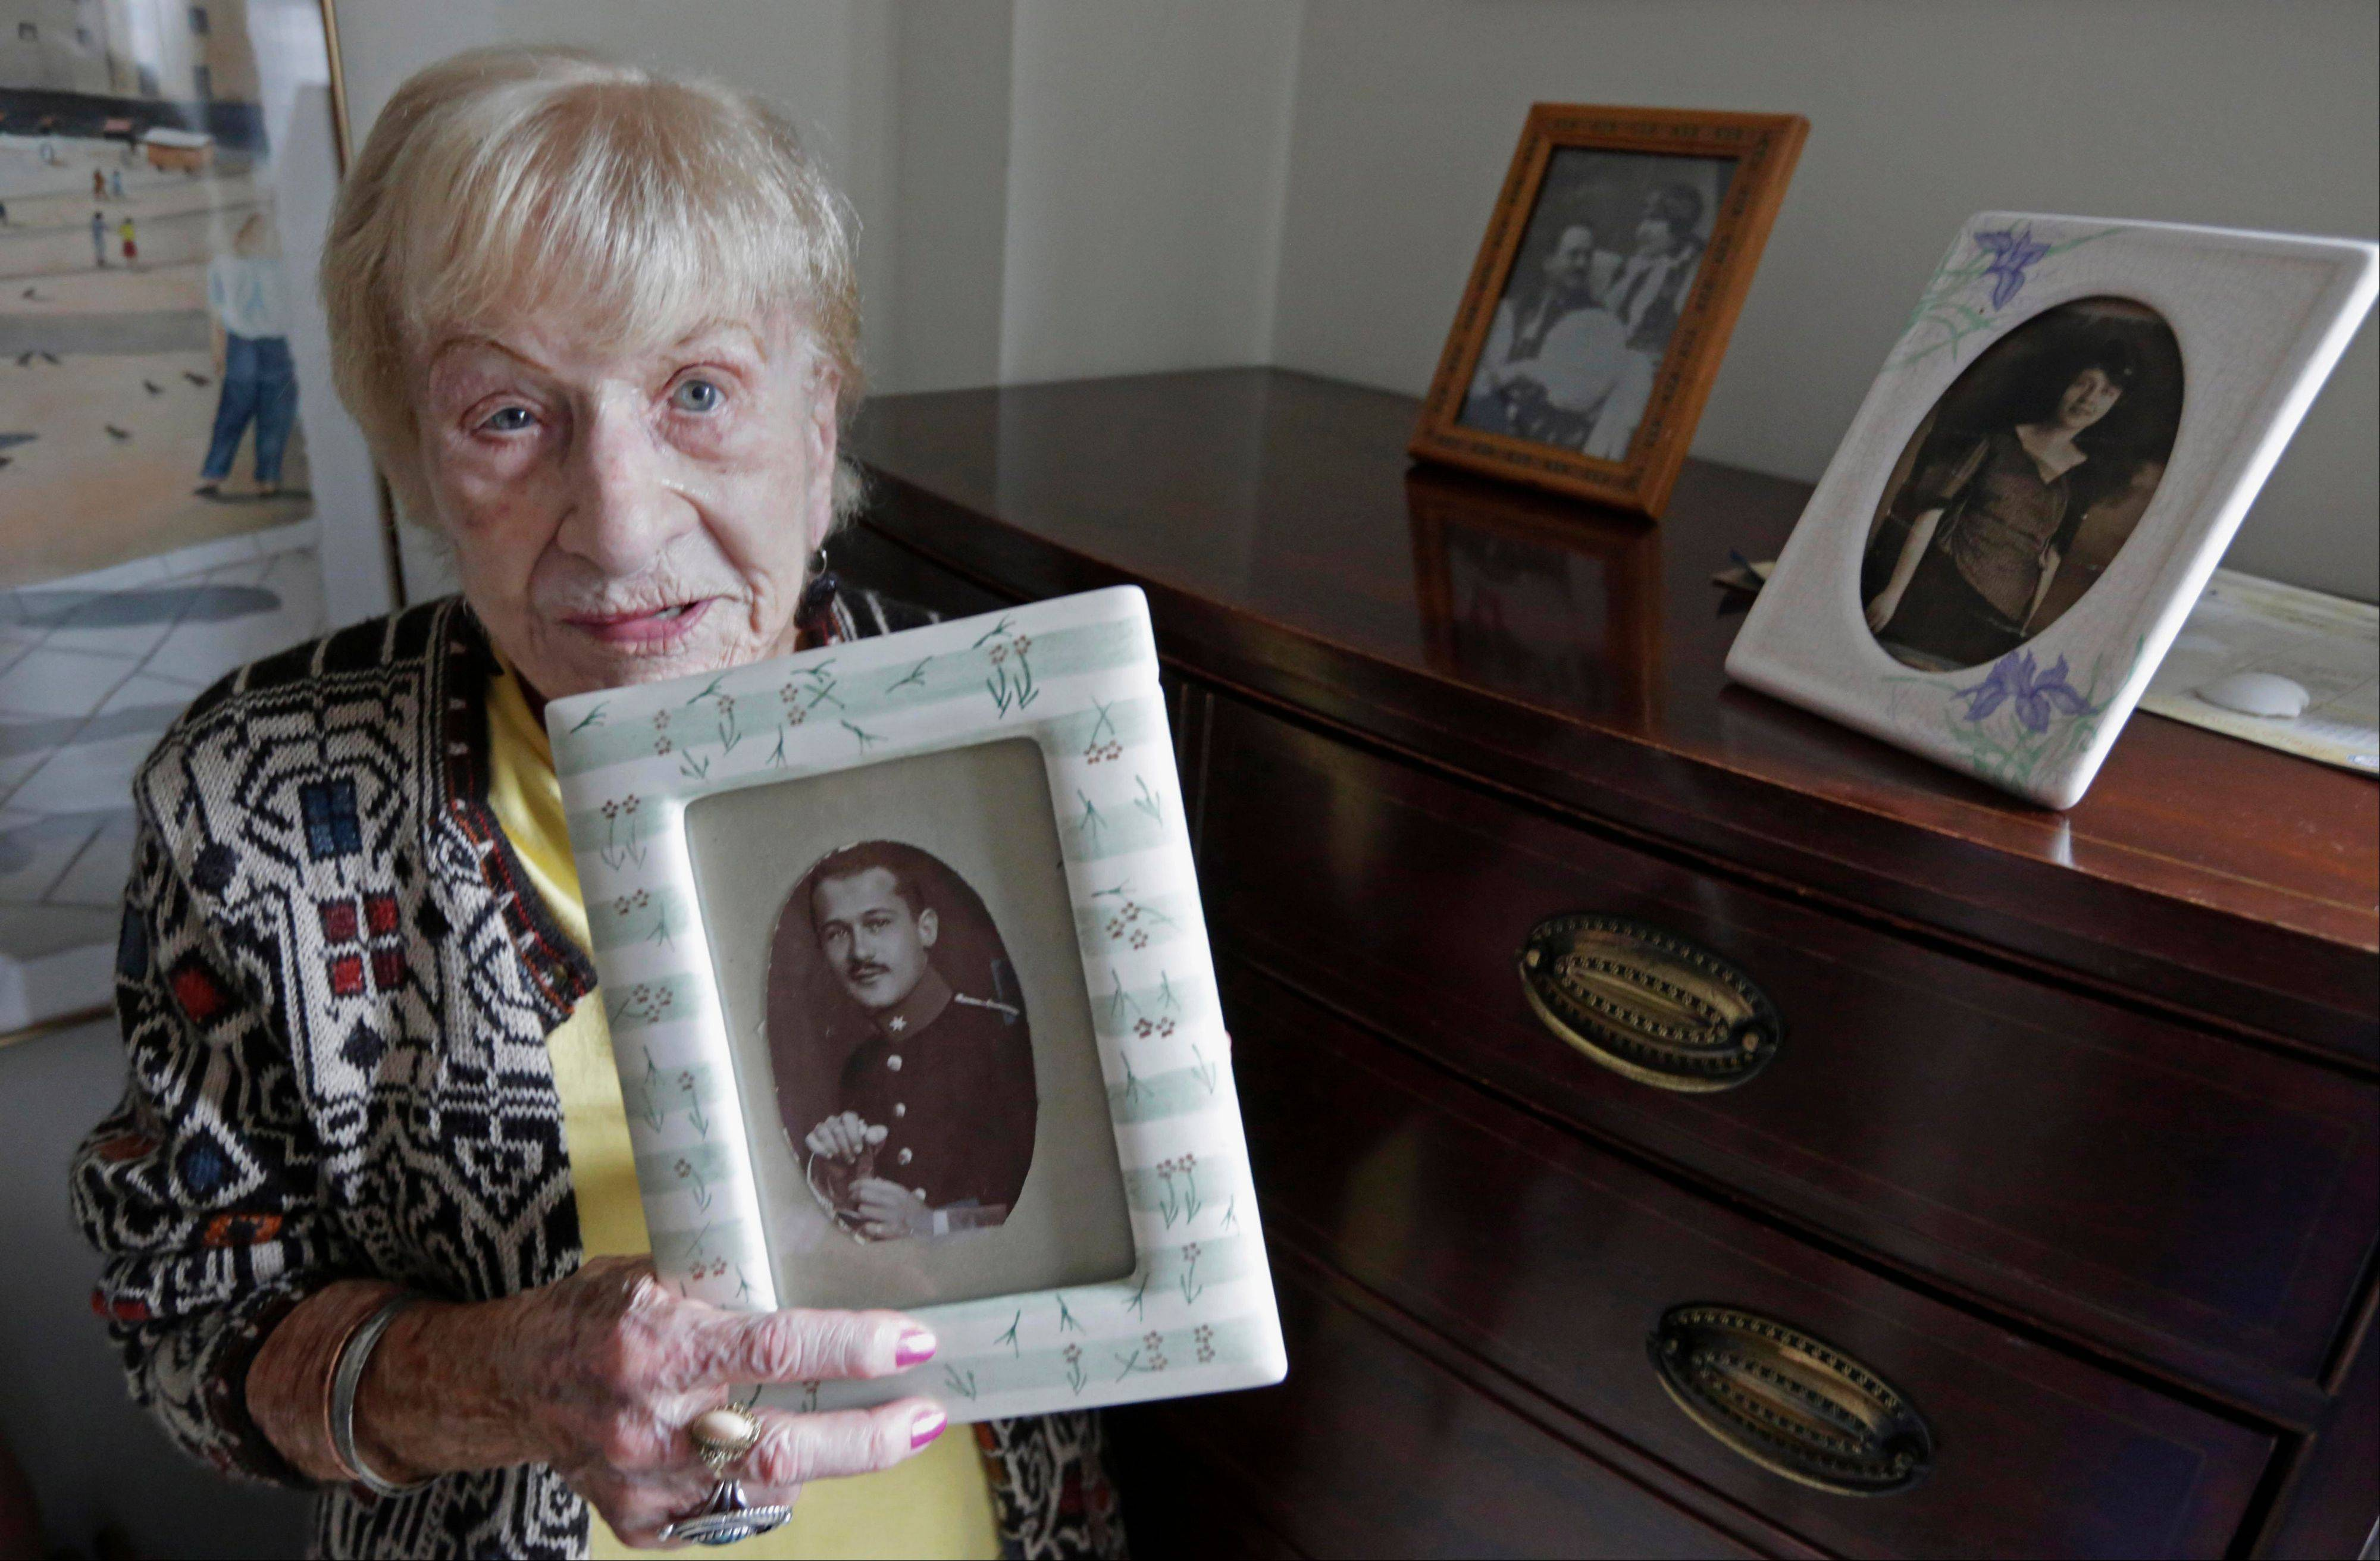 Edith Stern, 92, holds a photo of her father in her studio apartment at a retirement home in Chicago. Stern who is originally from Czechoslovakia lost her parents and her husband in the Holocaust.